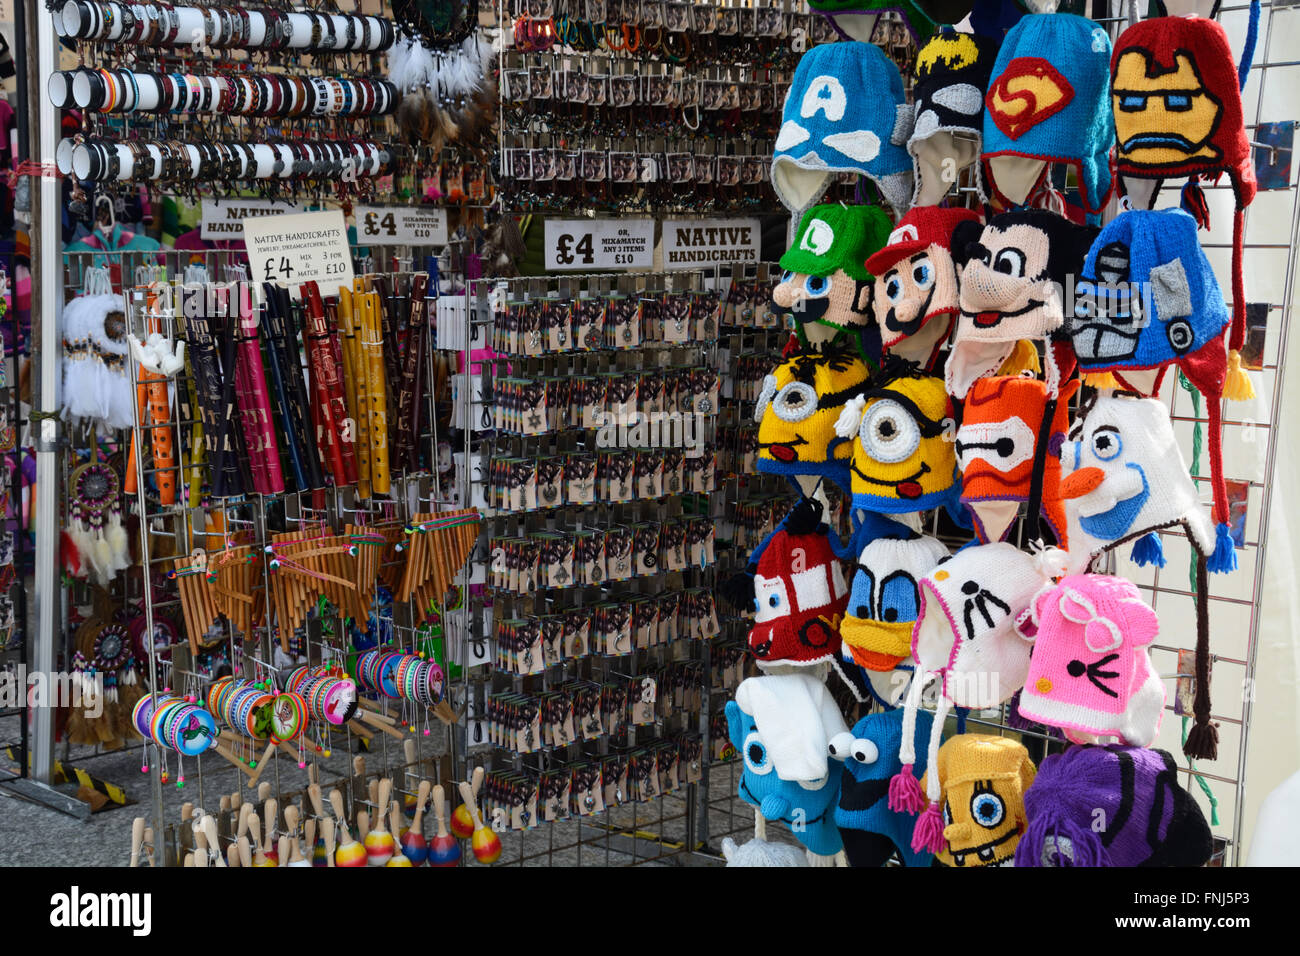 Knitted hats, at craft market, Nottingham. - Stock Image